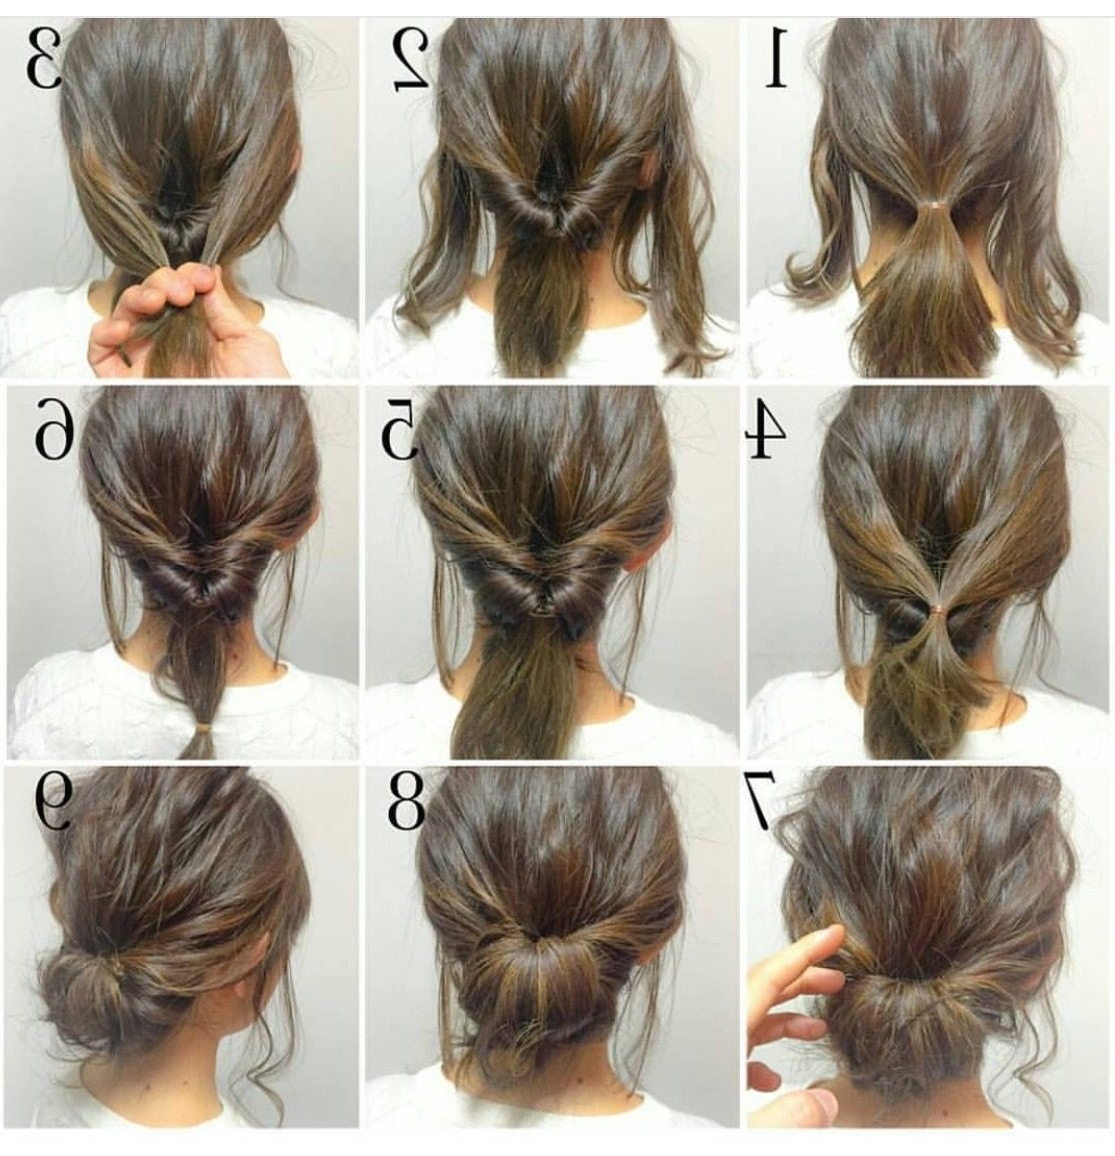 Easy, Hope This Works Out Quick Morning Hair! | • H A I R Pertaining To Simple Hair Updo Hairstyles (View 2 of 15)